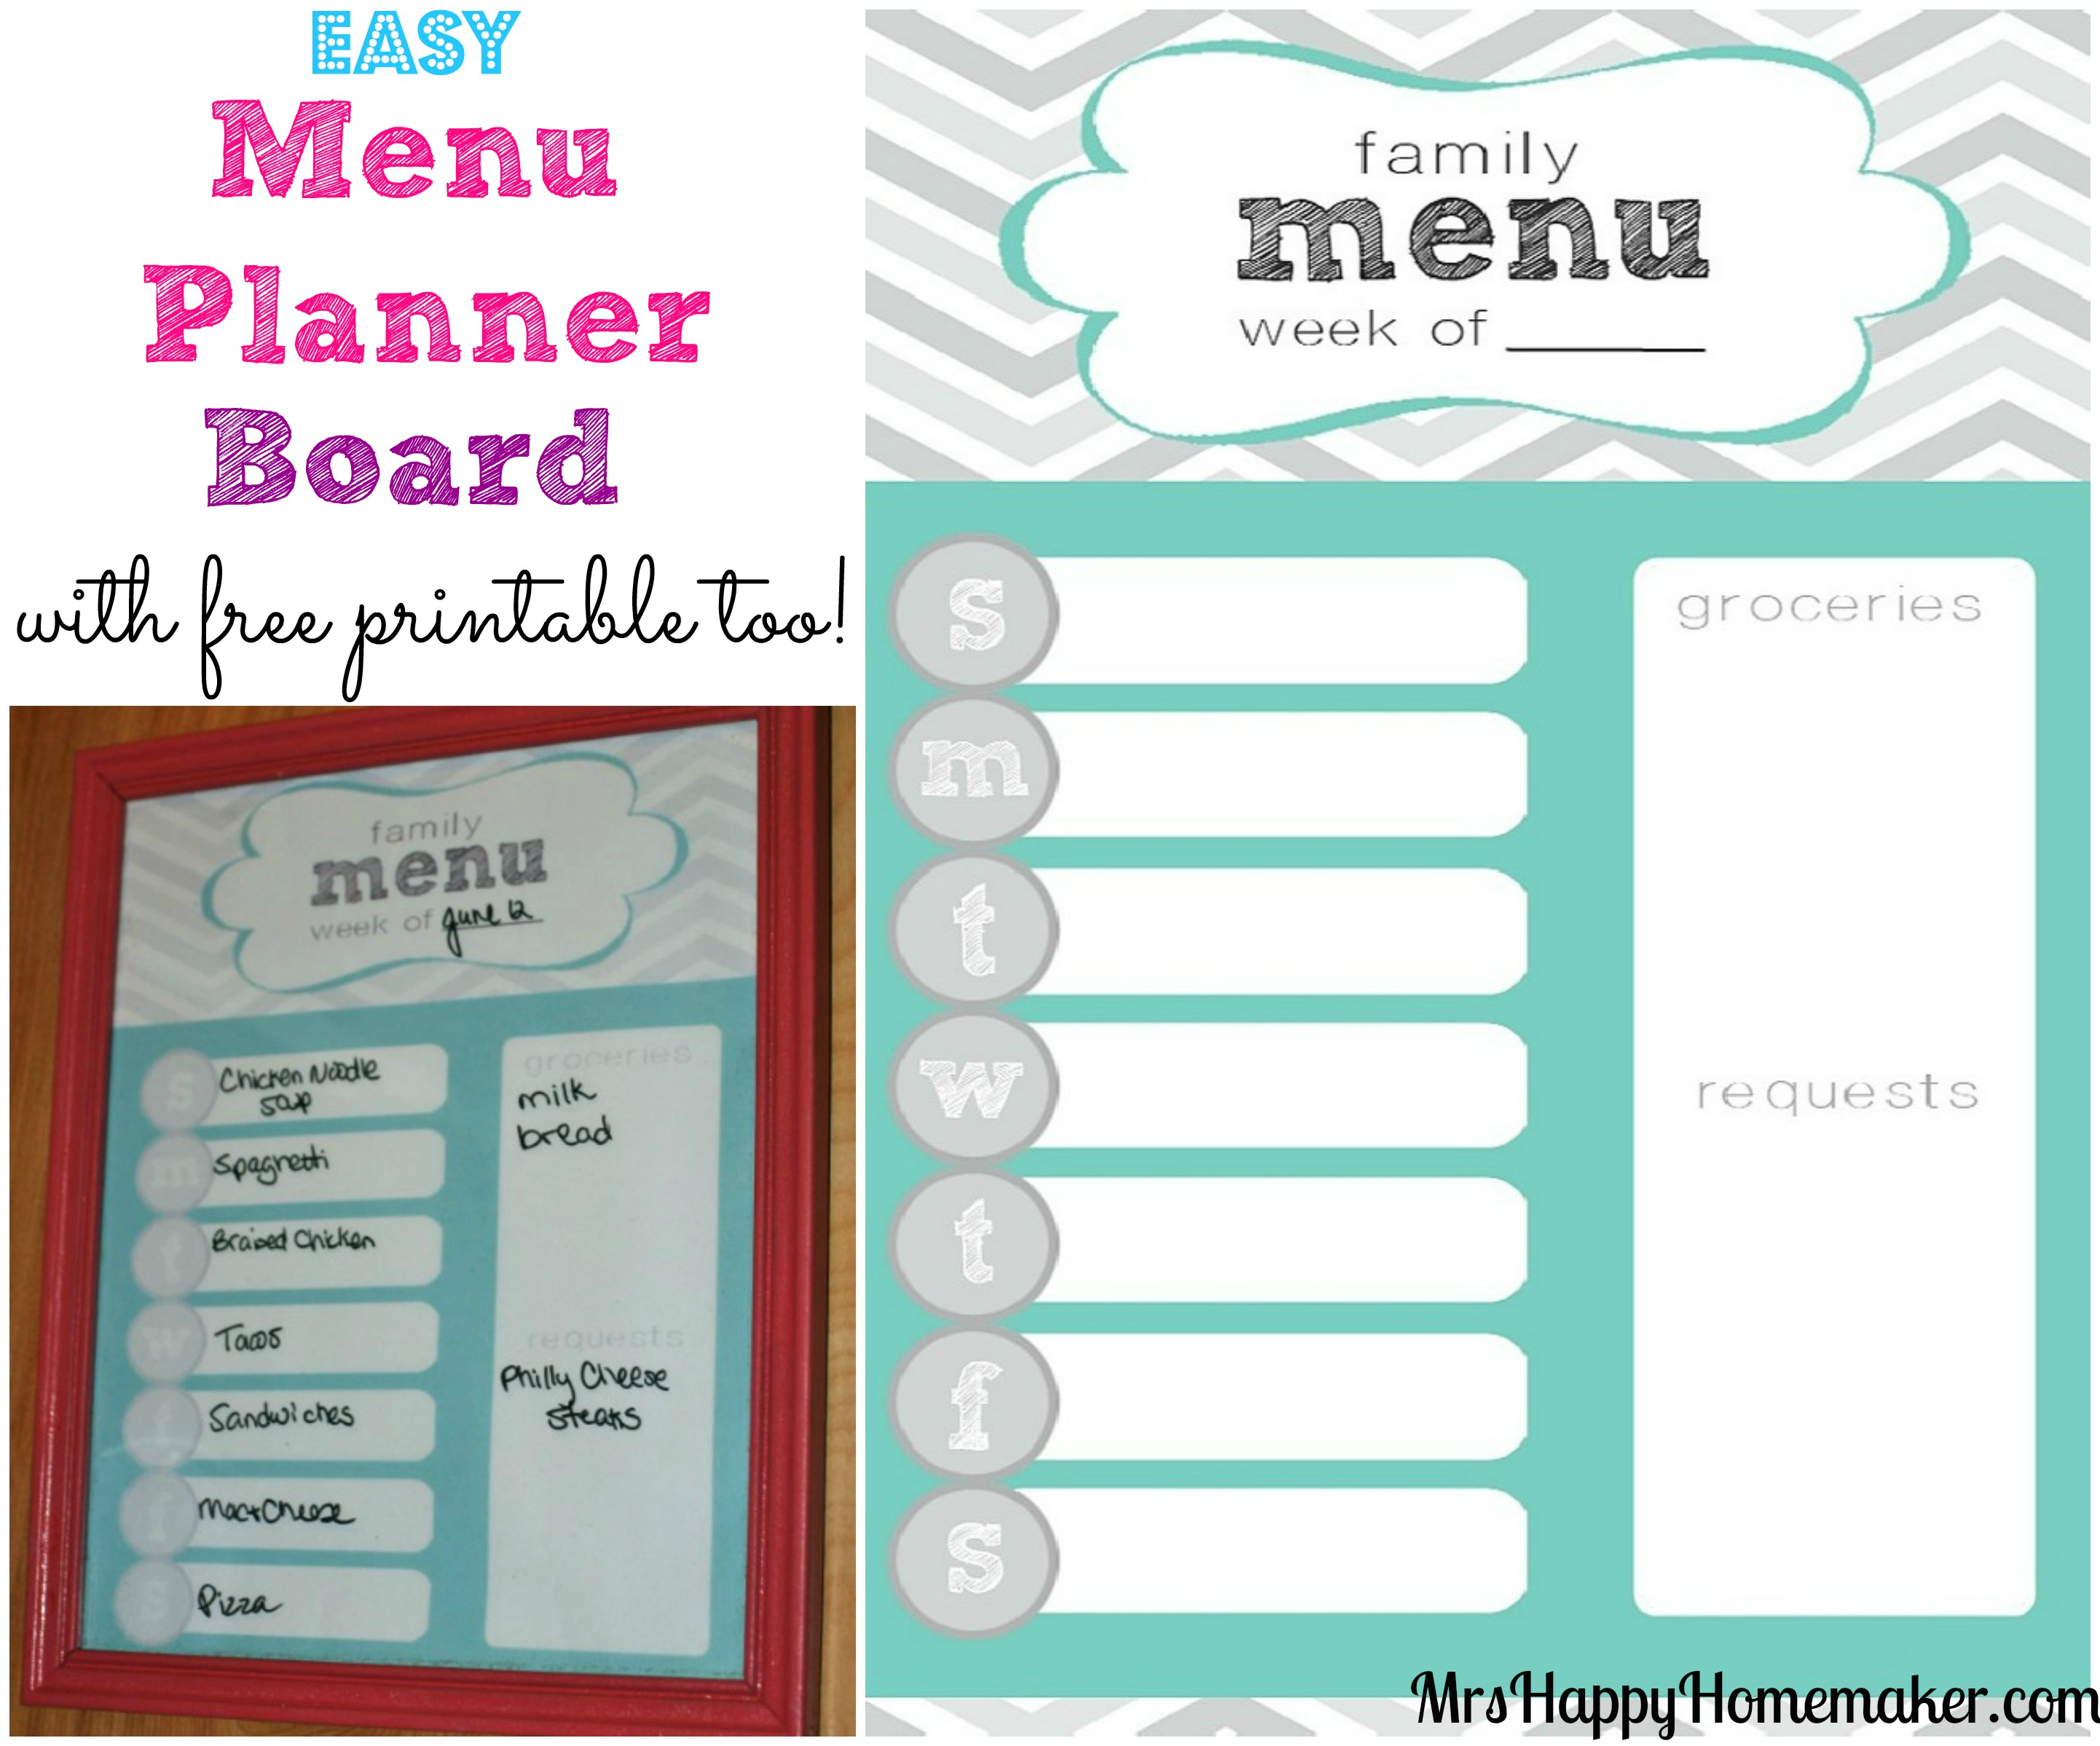 Easy Menu Planner Board - Mrs Happy Homemaker - Free Printable Menu